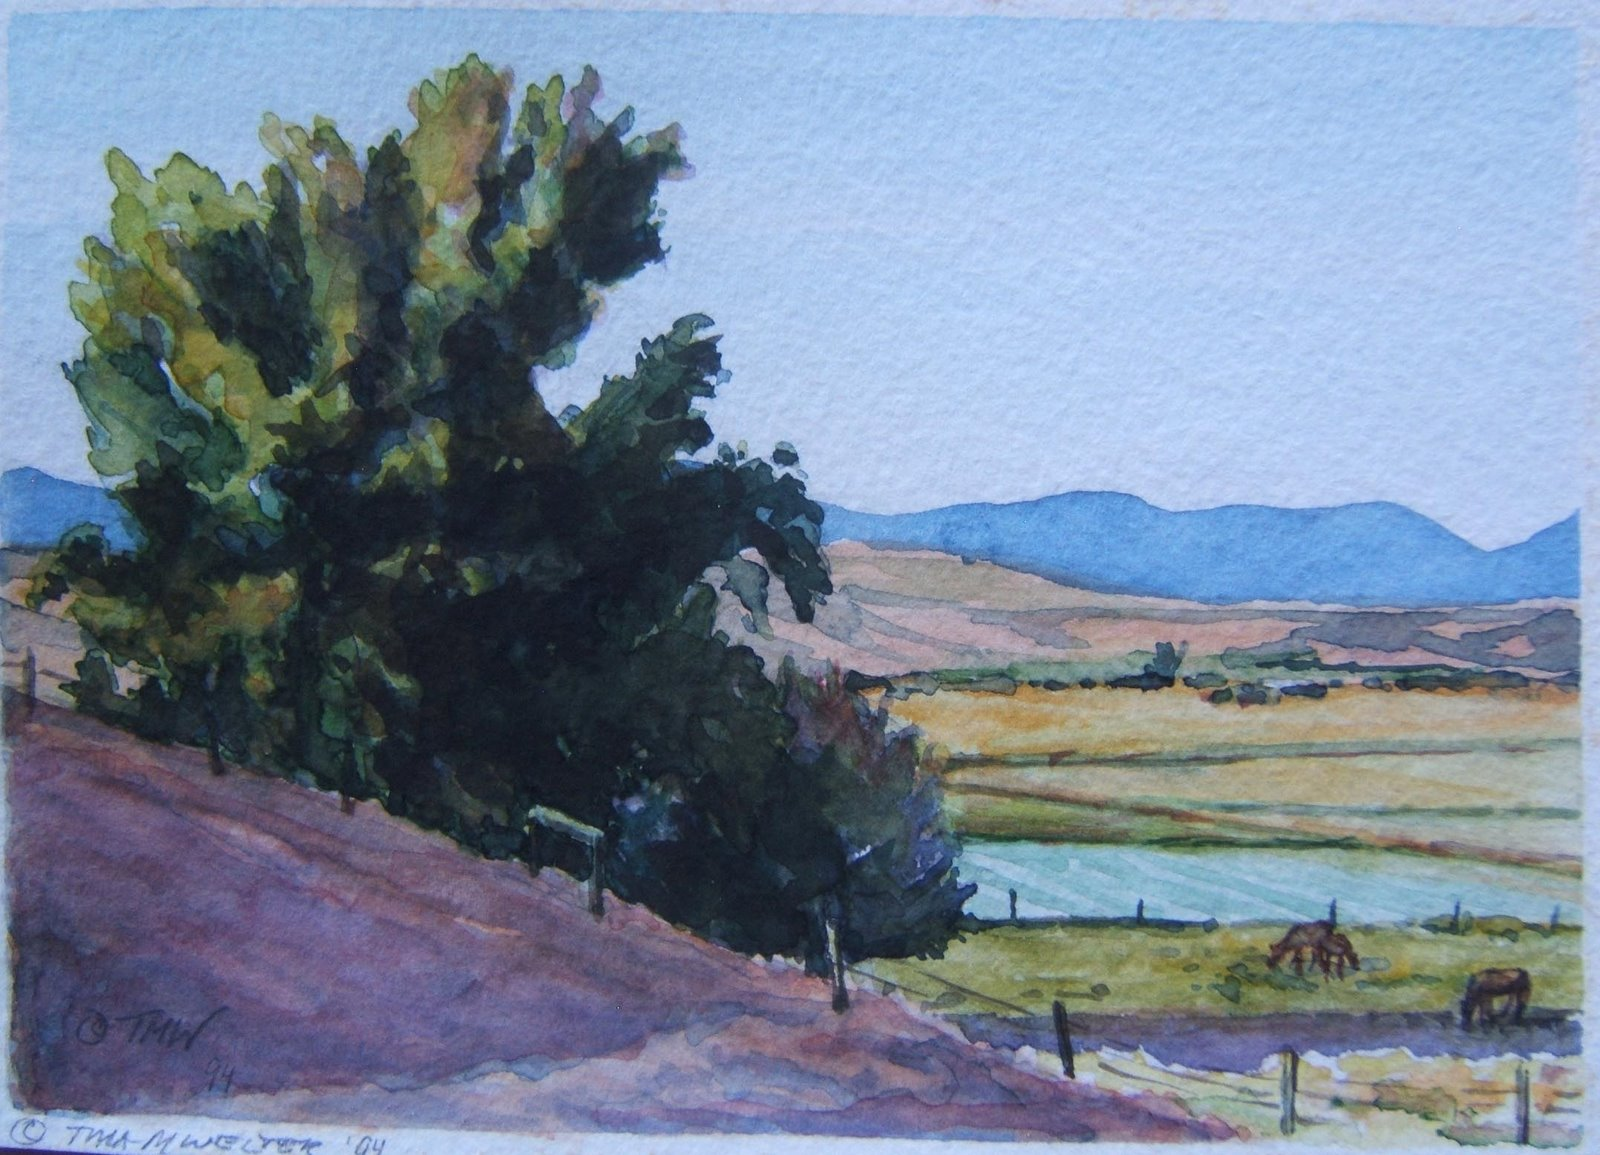 """Hillside and Horses"" 5""x 7"" watercolor on paper, ©1994 Tina M Welter  Landscape watercolor painting near Drummond, Montana"